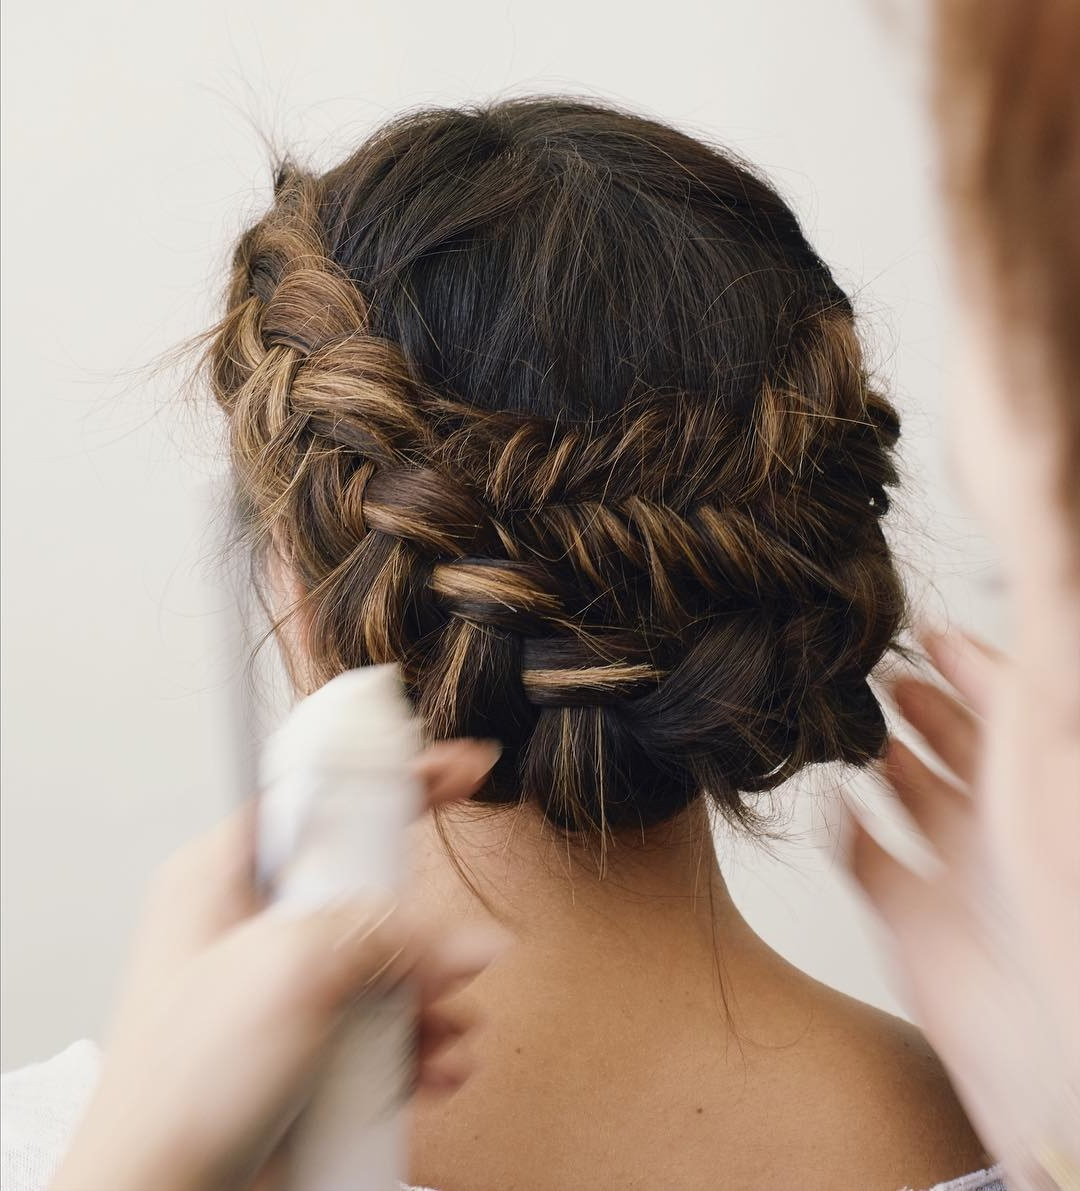 Brides Pertaining To Well Liked Double Crown Braid Prom Hairstyles (View 5 of 20)